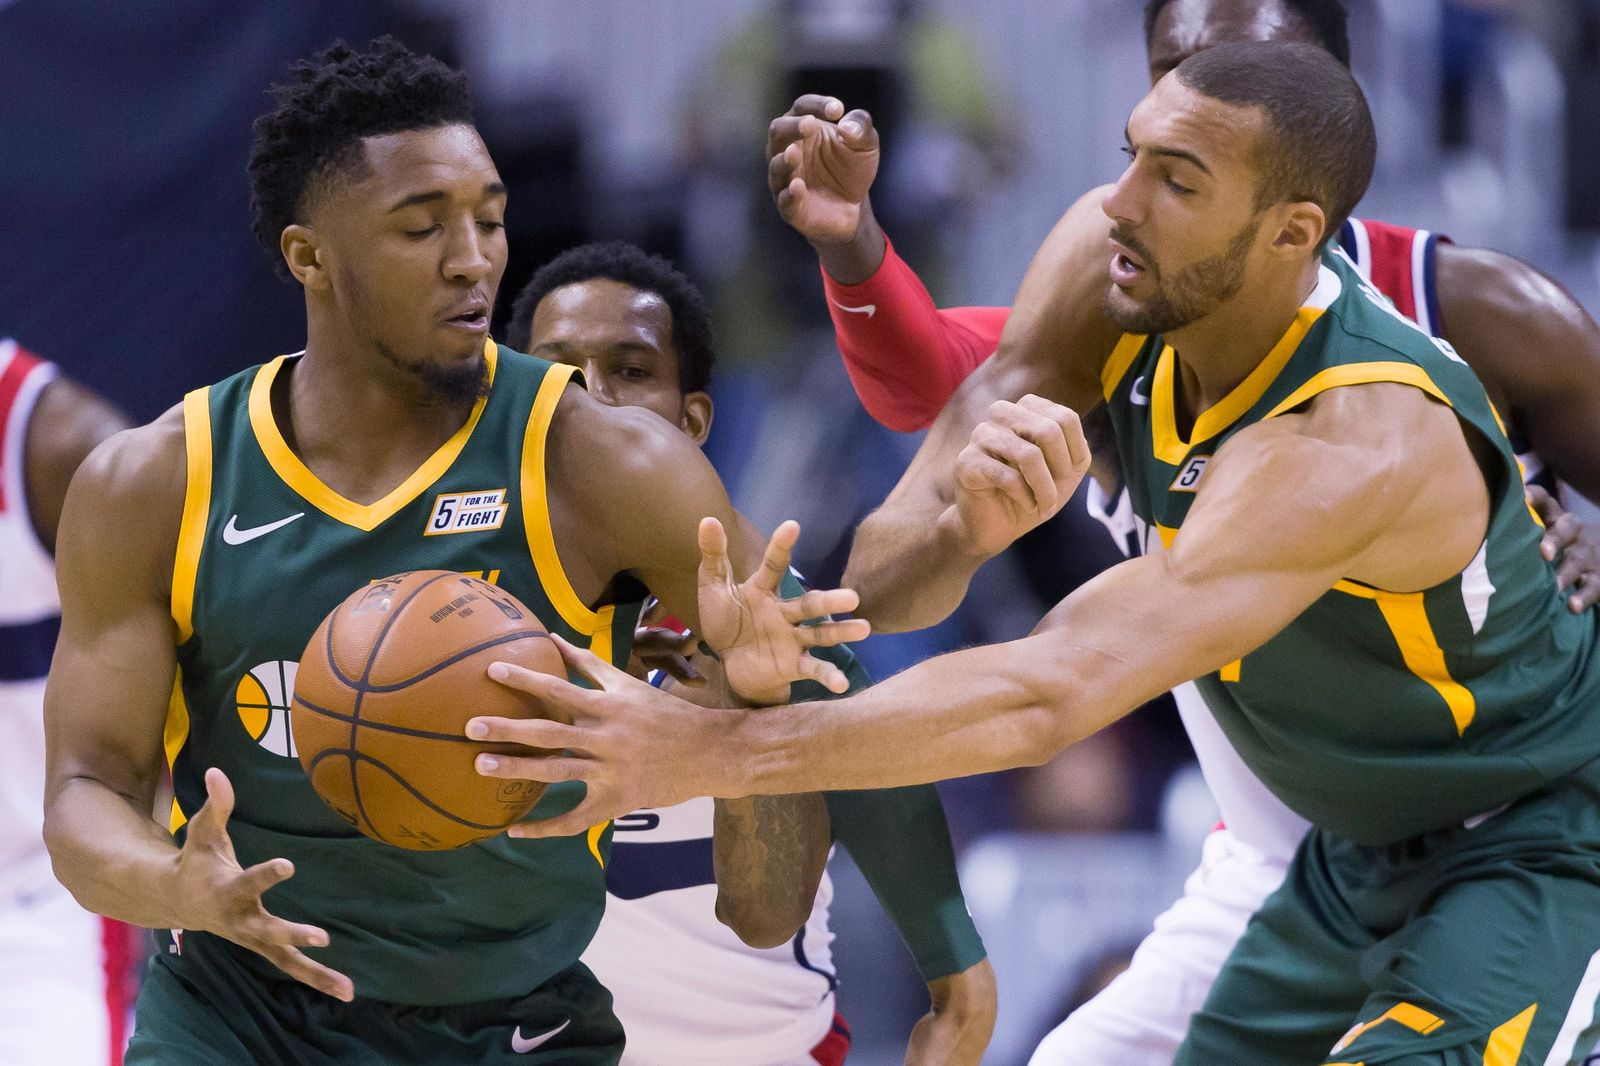 Utah Jazz guard Donovan Mitchell, left, gets the ball from center Rudy Gobert (27), from France, with Washington Wizards forward Trevor Ariza, back left, defending during the first half of an NBA basketball game Monday, March 18, 2019, in Washington. (AP Photo/Alex Brandon)